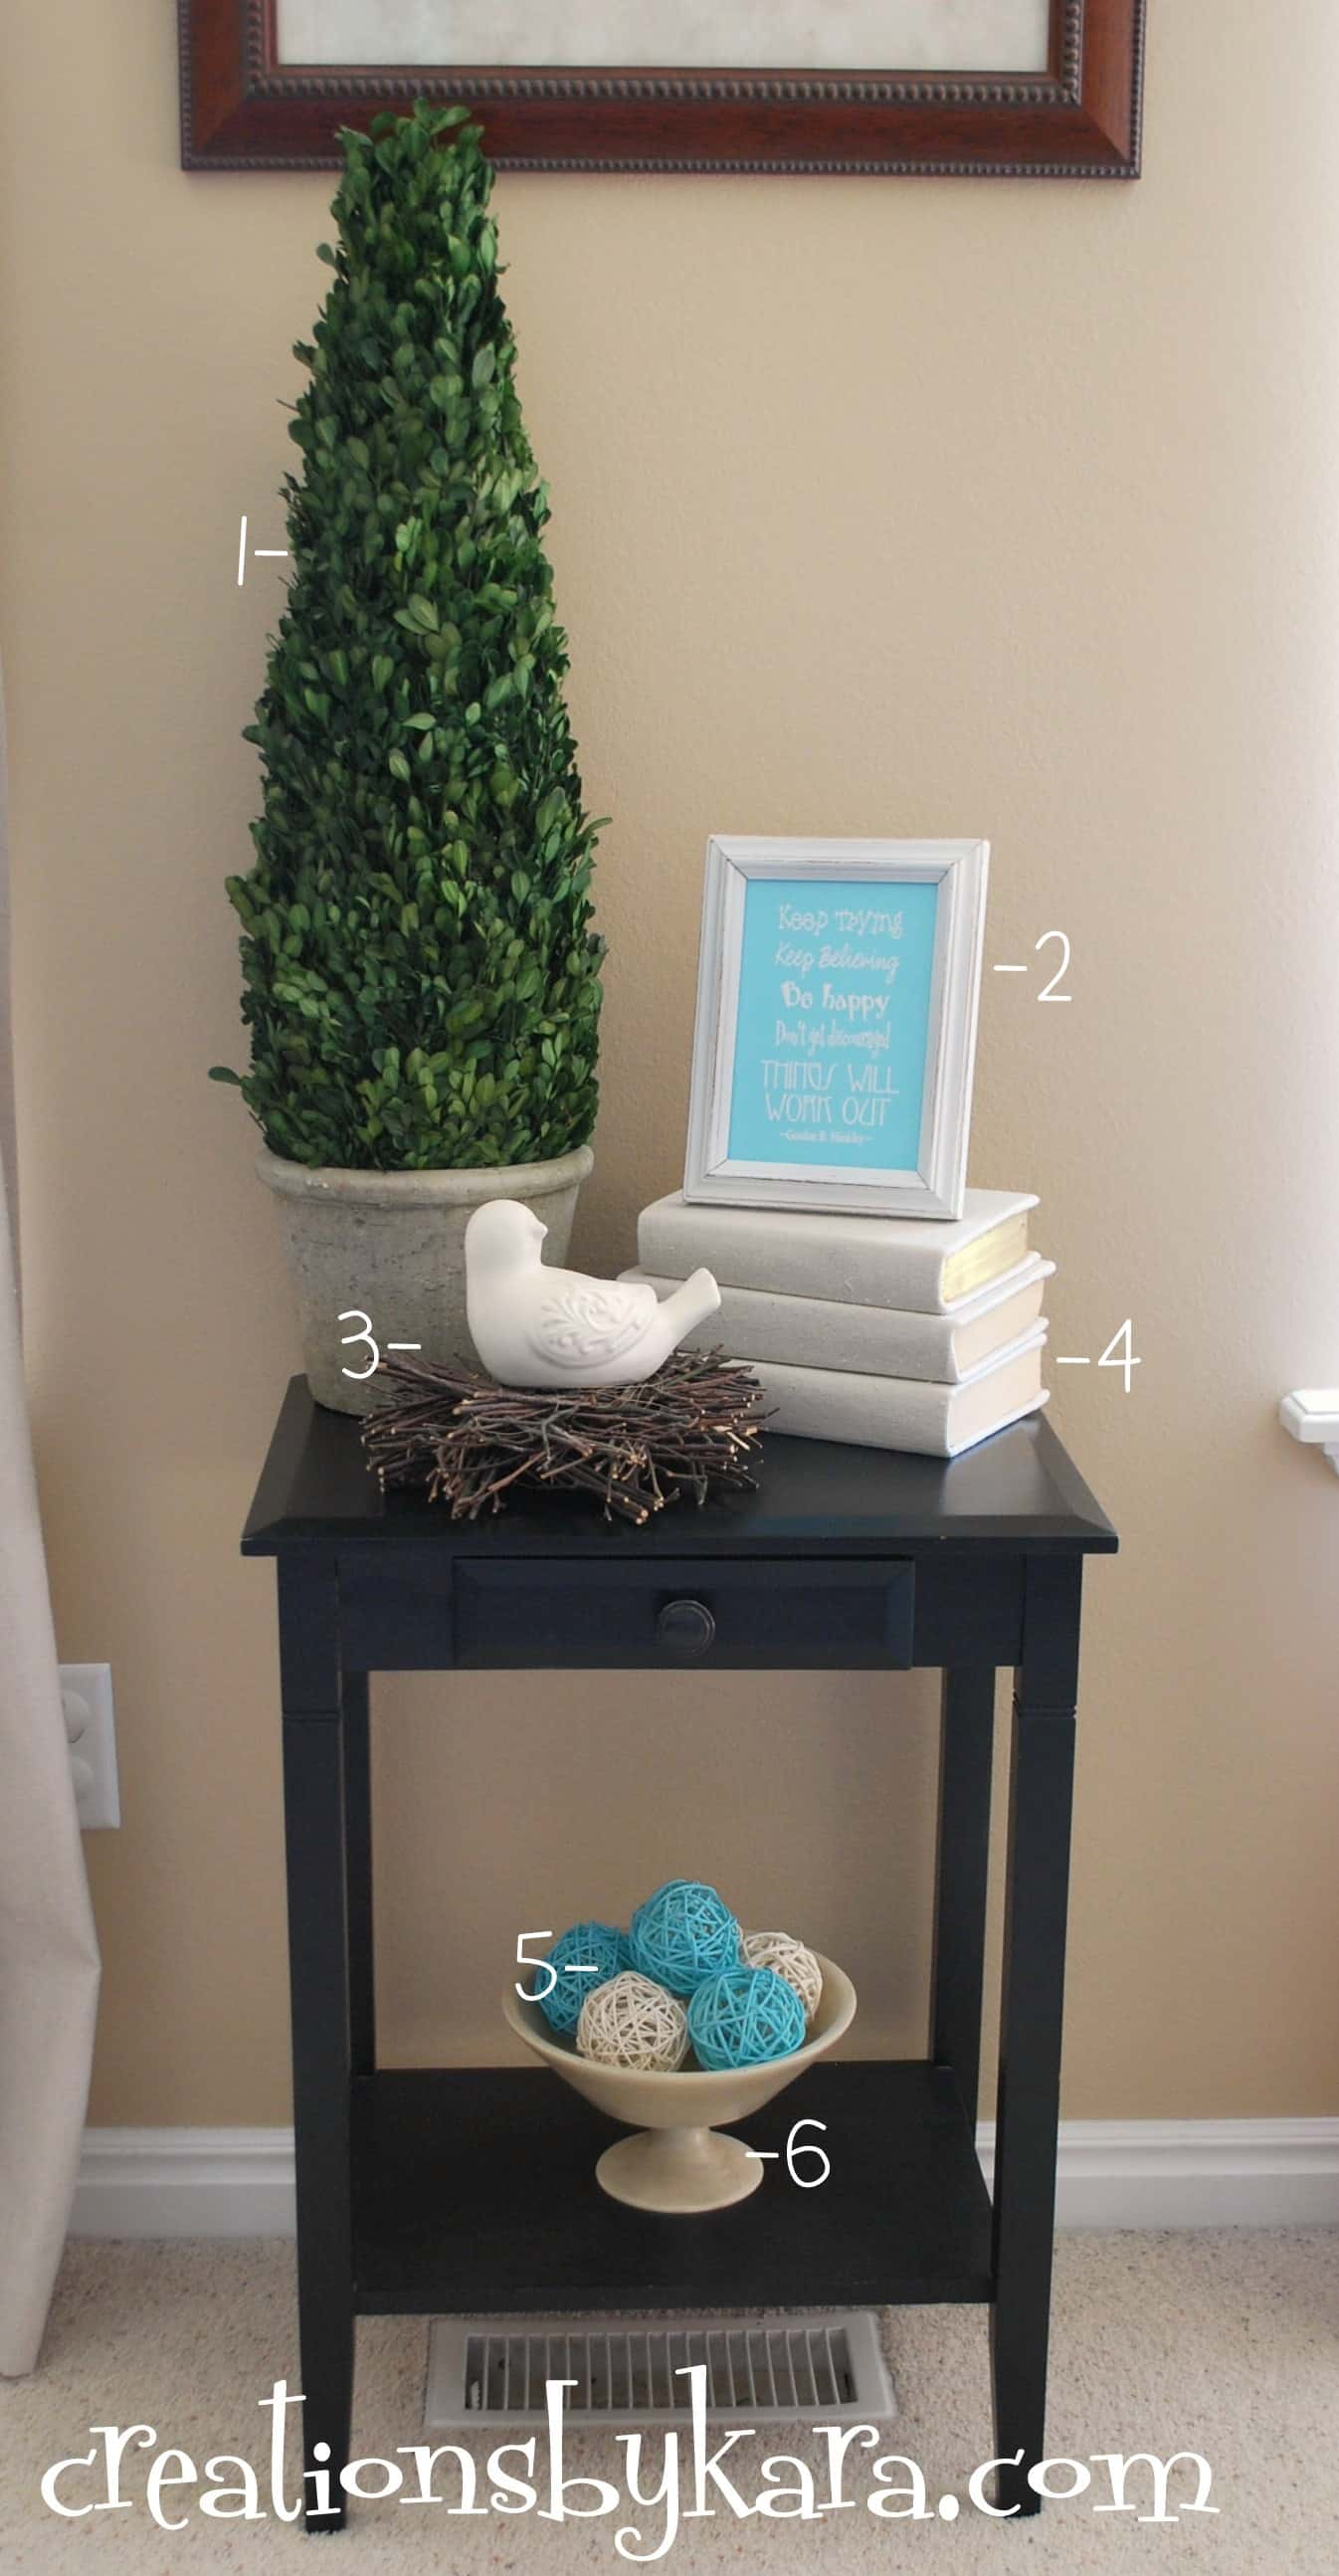 DIY Decorating- Living Room Table - Creations by Kara